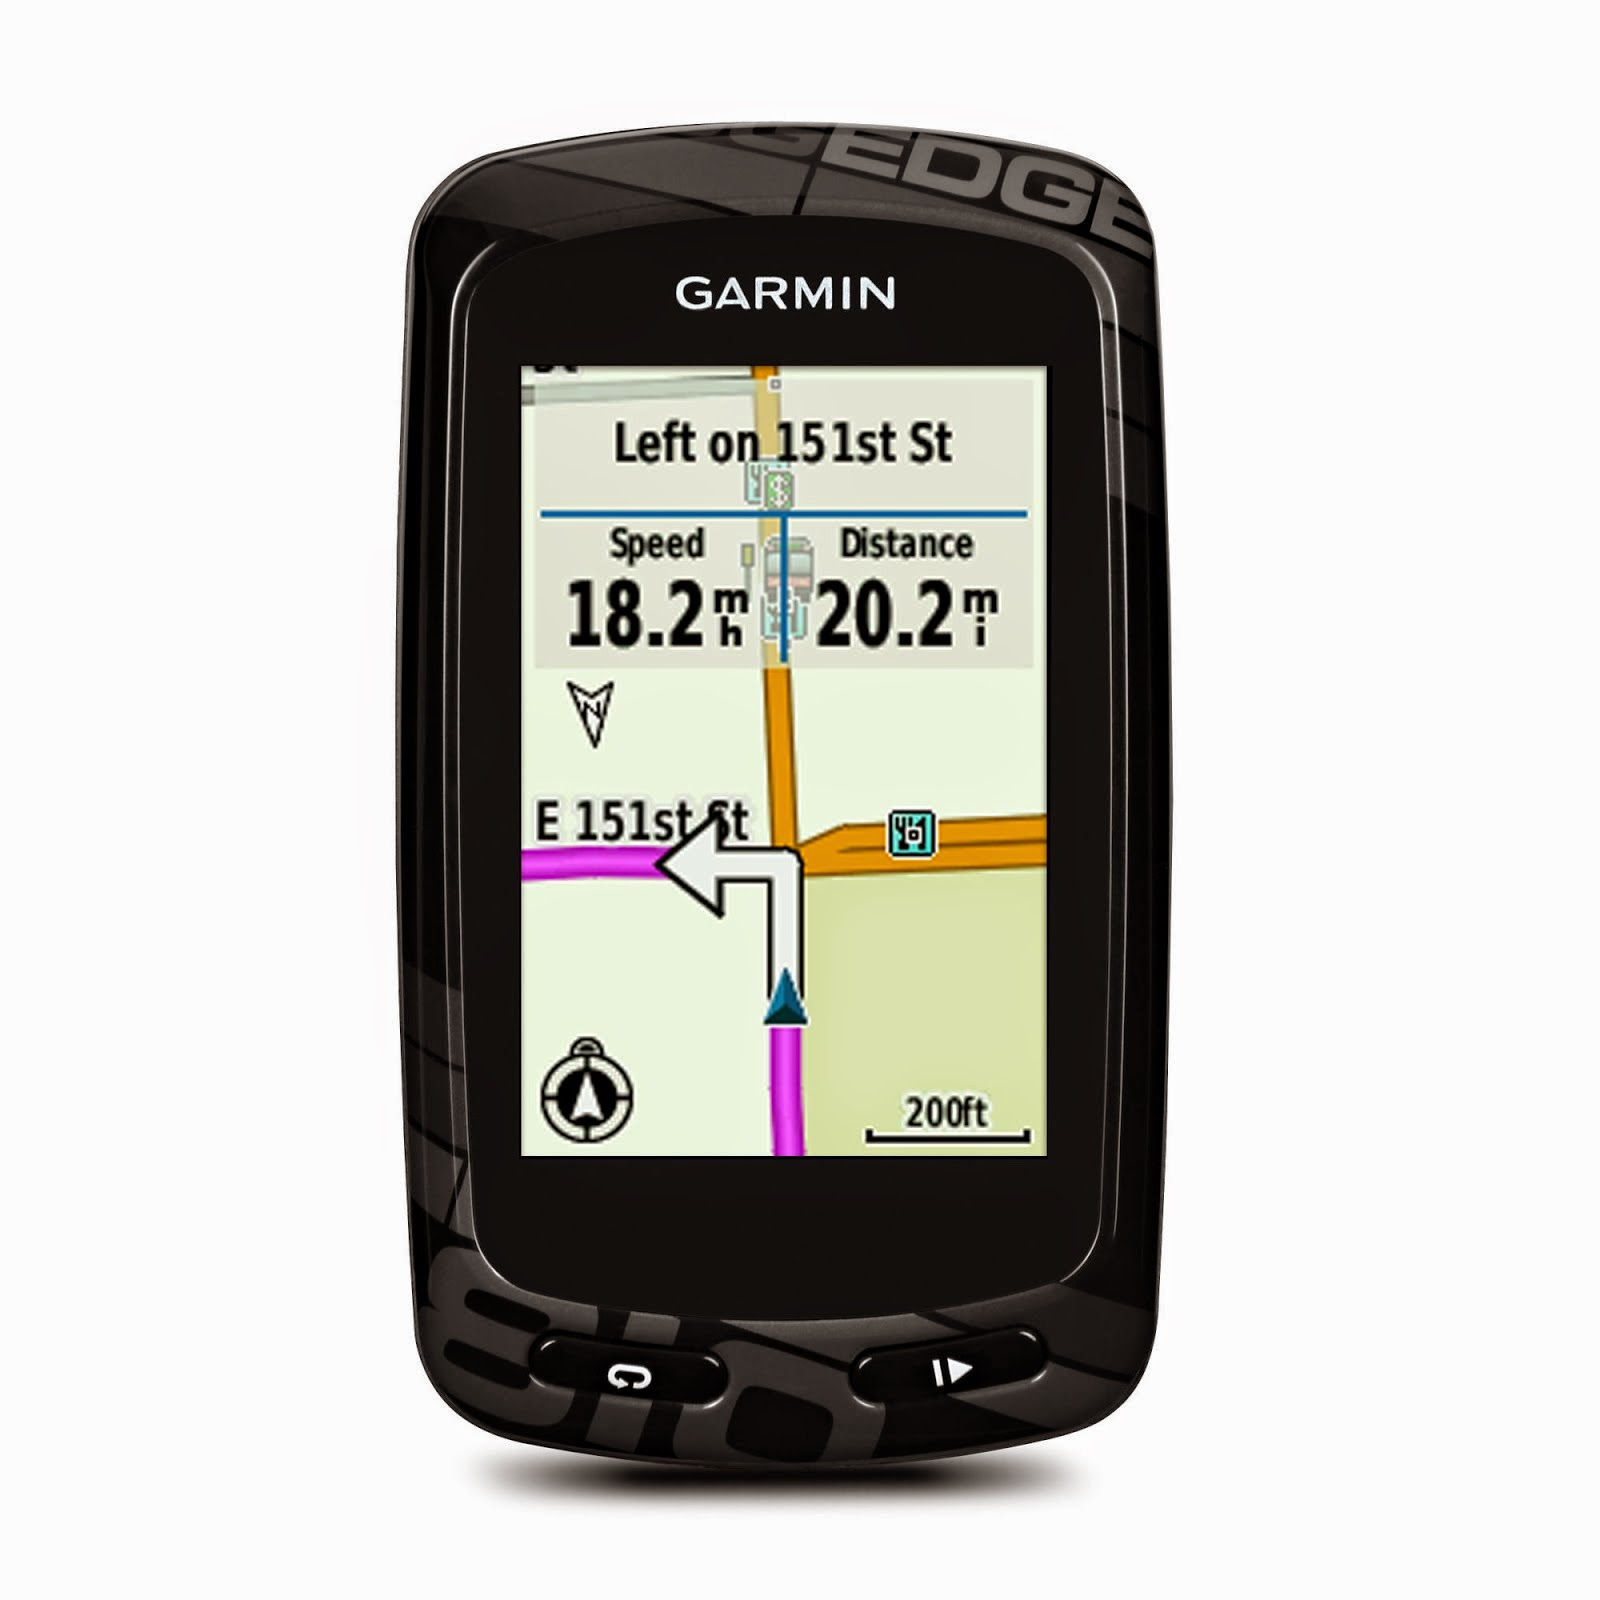 Garmin Edge 810 Cycling Computer